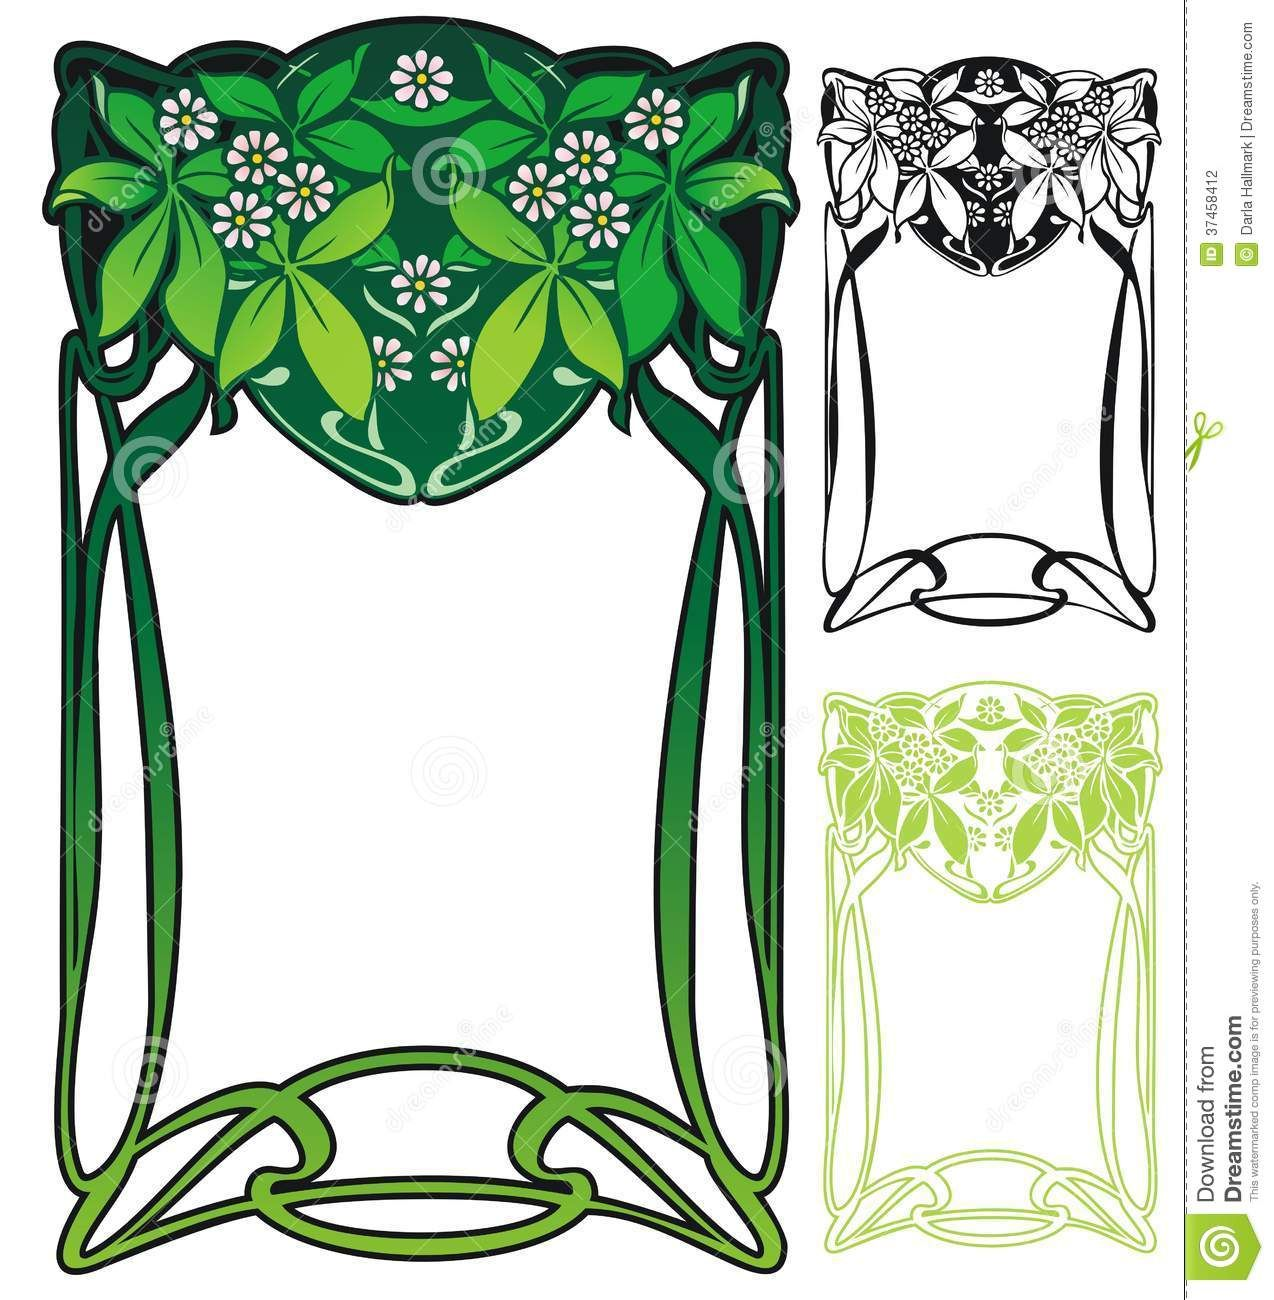 Art Nouveau Border - Download From Over 26 Million High Quality ...